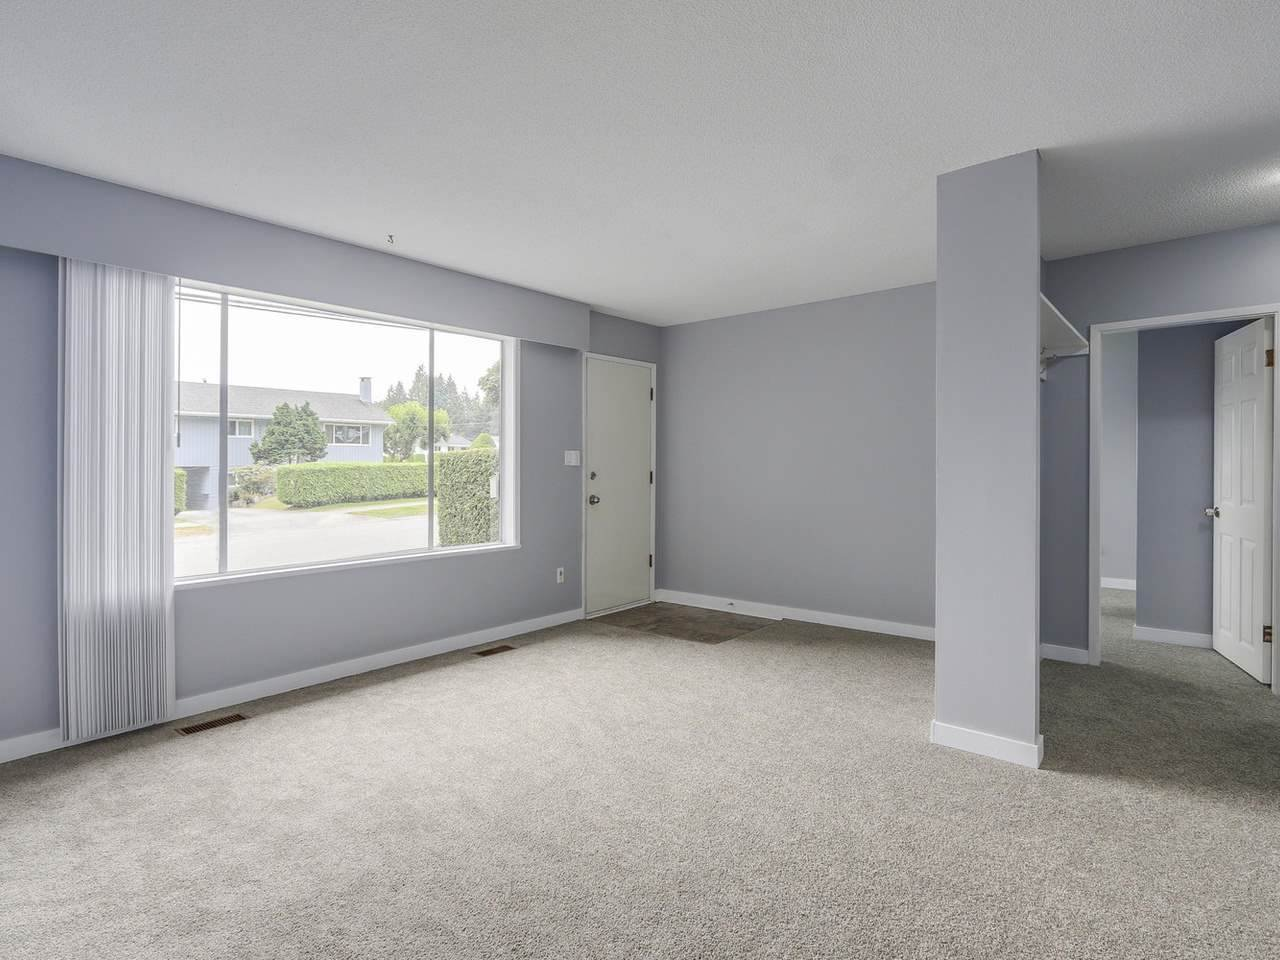 """Photo 5: Photos: 1673 GREENMOUNT Avenue in Port Coquitlam: Oxford Heights 1/2 Duplex for sale in """"OXFORD HEIGHTS"""" : MLS®# R2221936"""